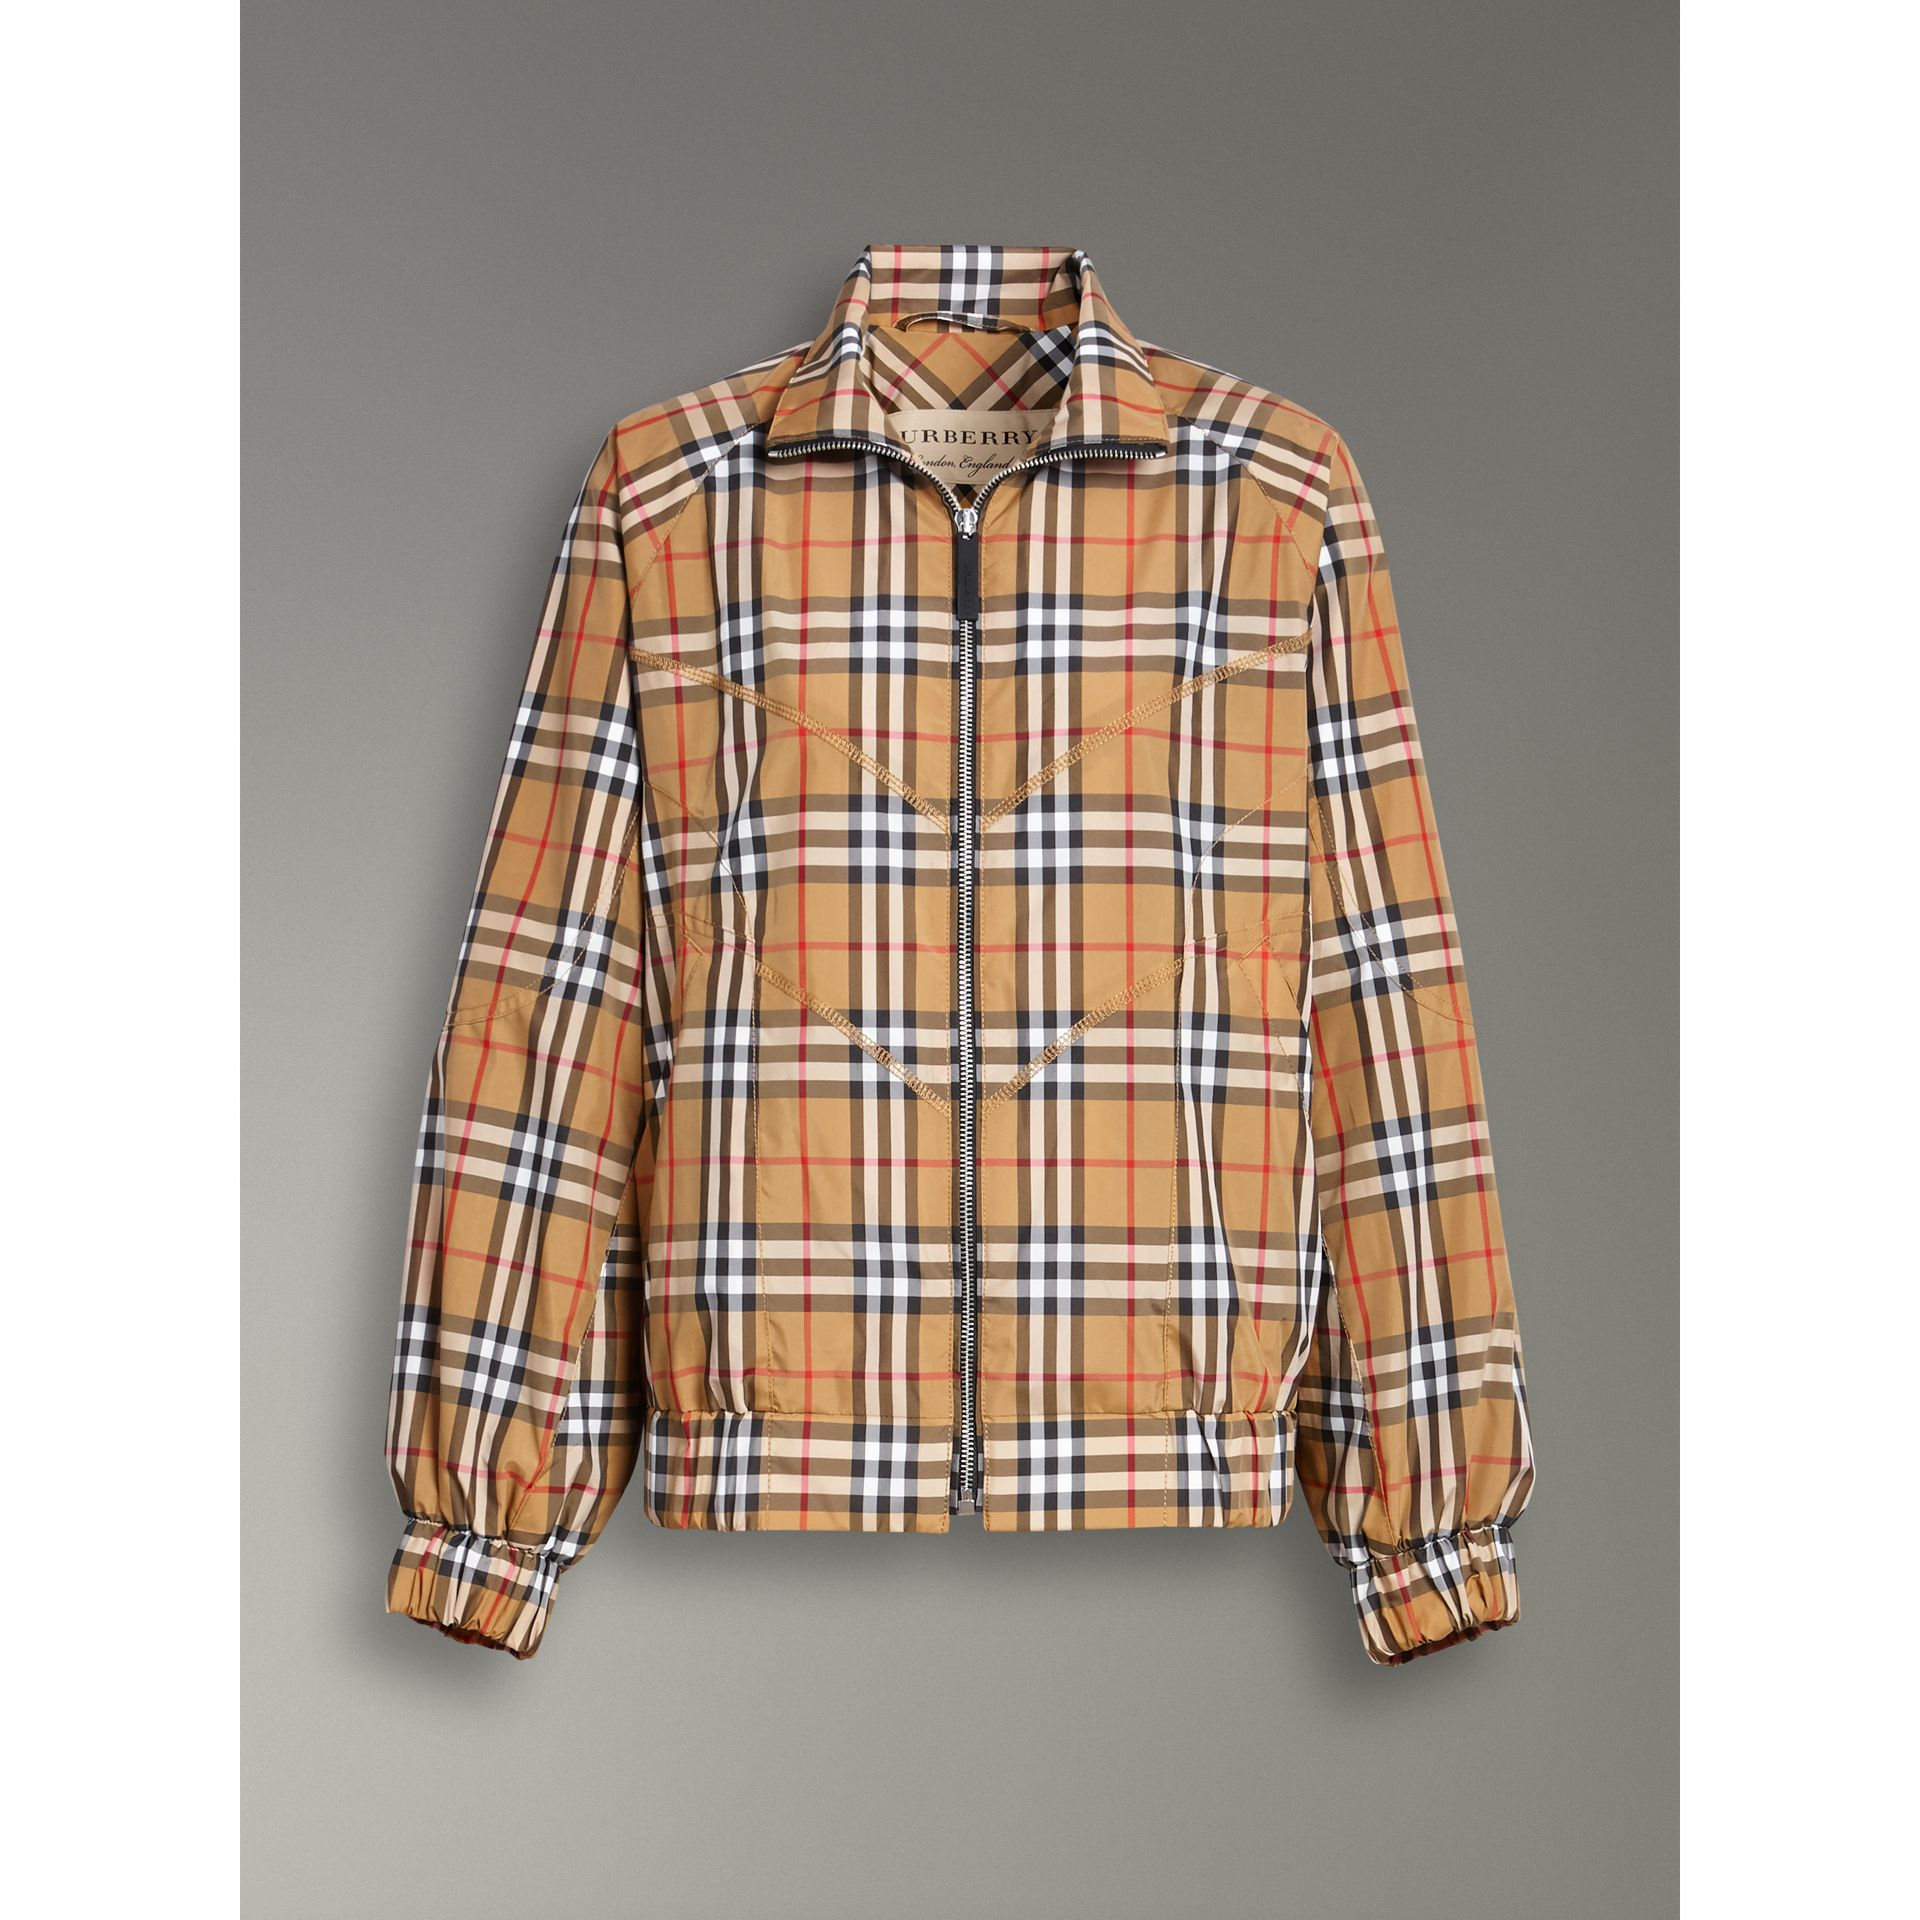 Topstitch Detail Vintage Check Harrington Jacket in Antique Yellow - Women | Burberry Australia - gallery image 3